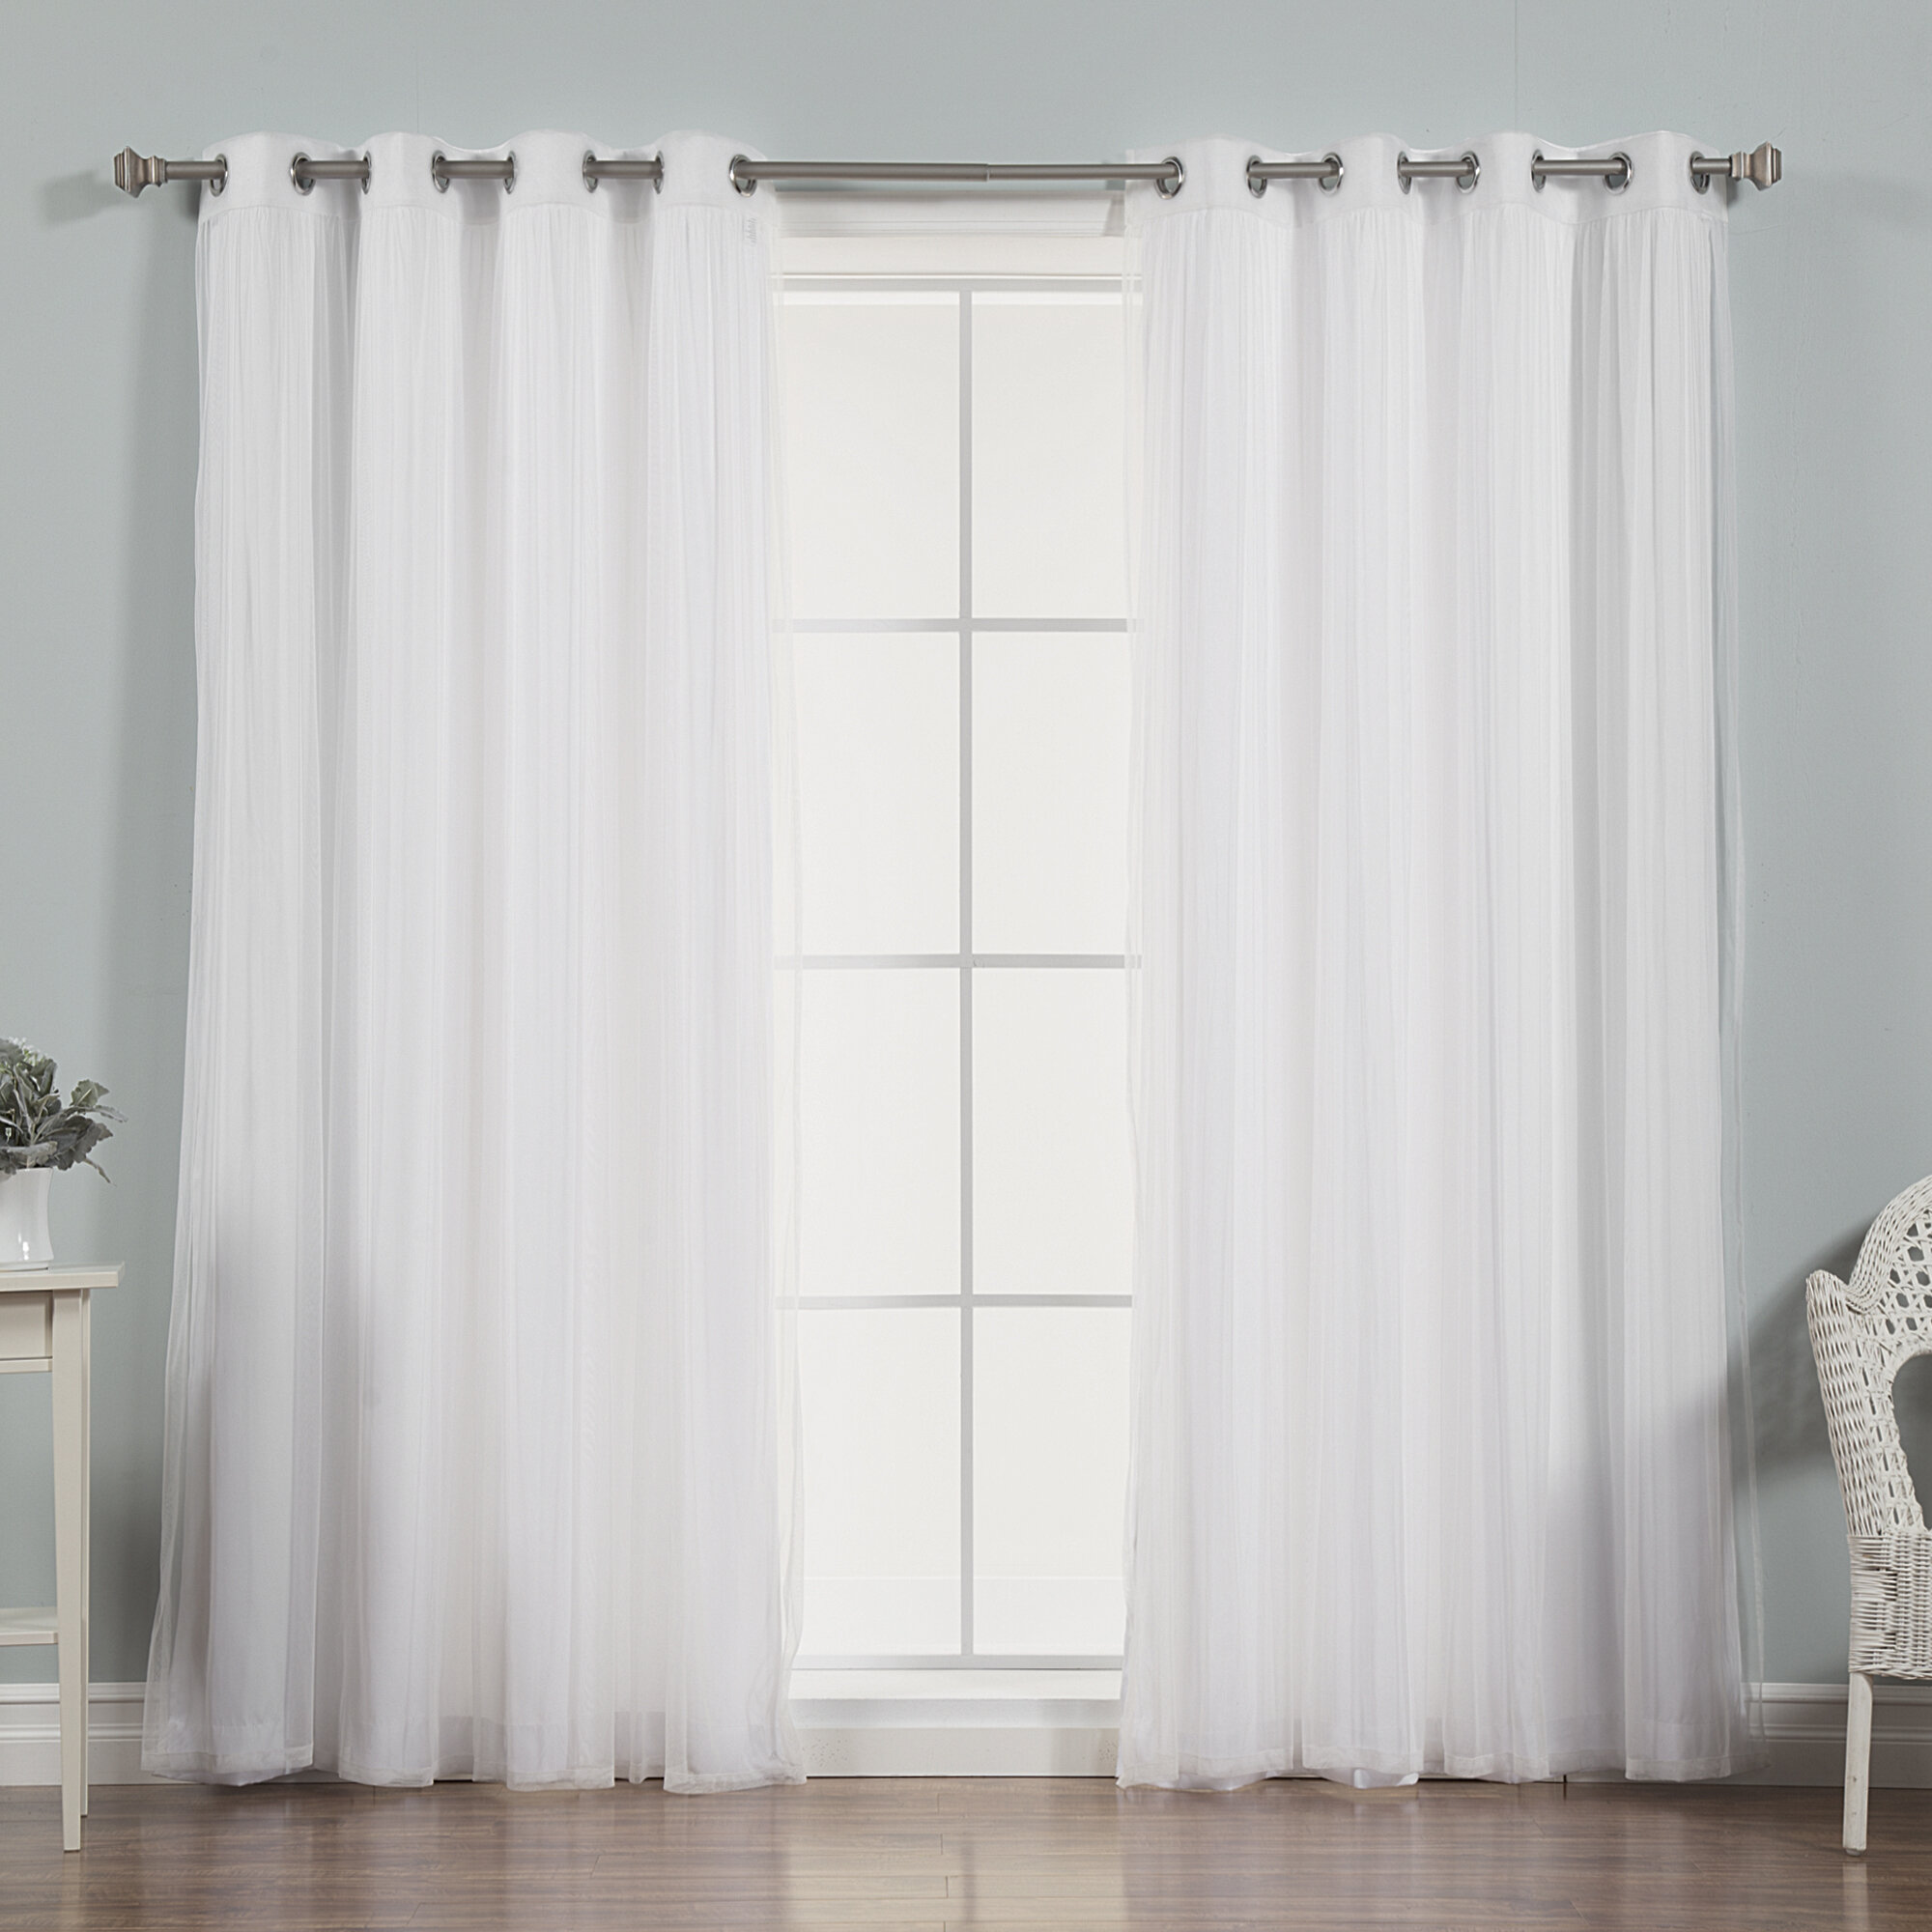 furniture ideas deltaangelgroup curtains valance grommet sheer curtain in